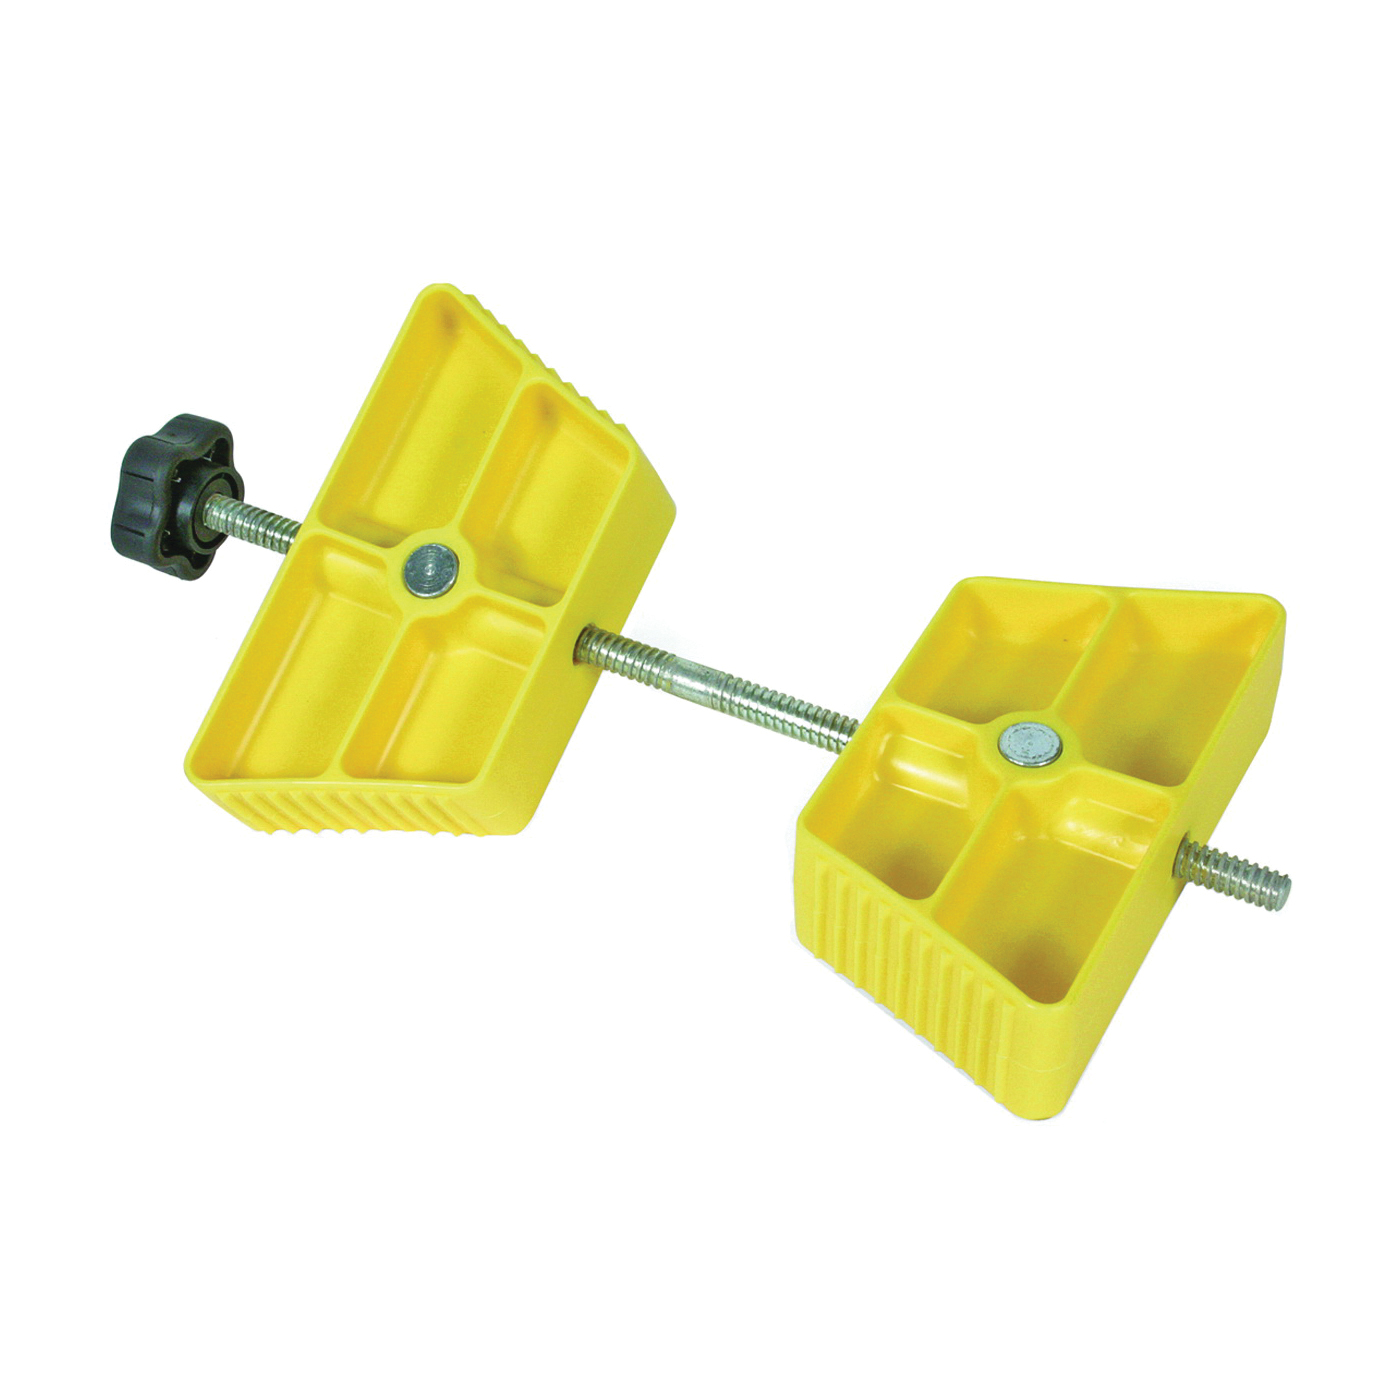 Picture of CAMCO 44622 Wheel Stop Chock, Plastic, Yellow, For: 26 to 30 in Dia Tires with Spacing of 3-1/2 to 5-1/2 in